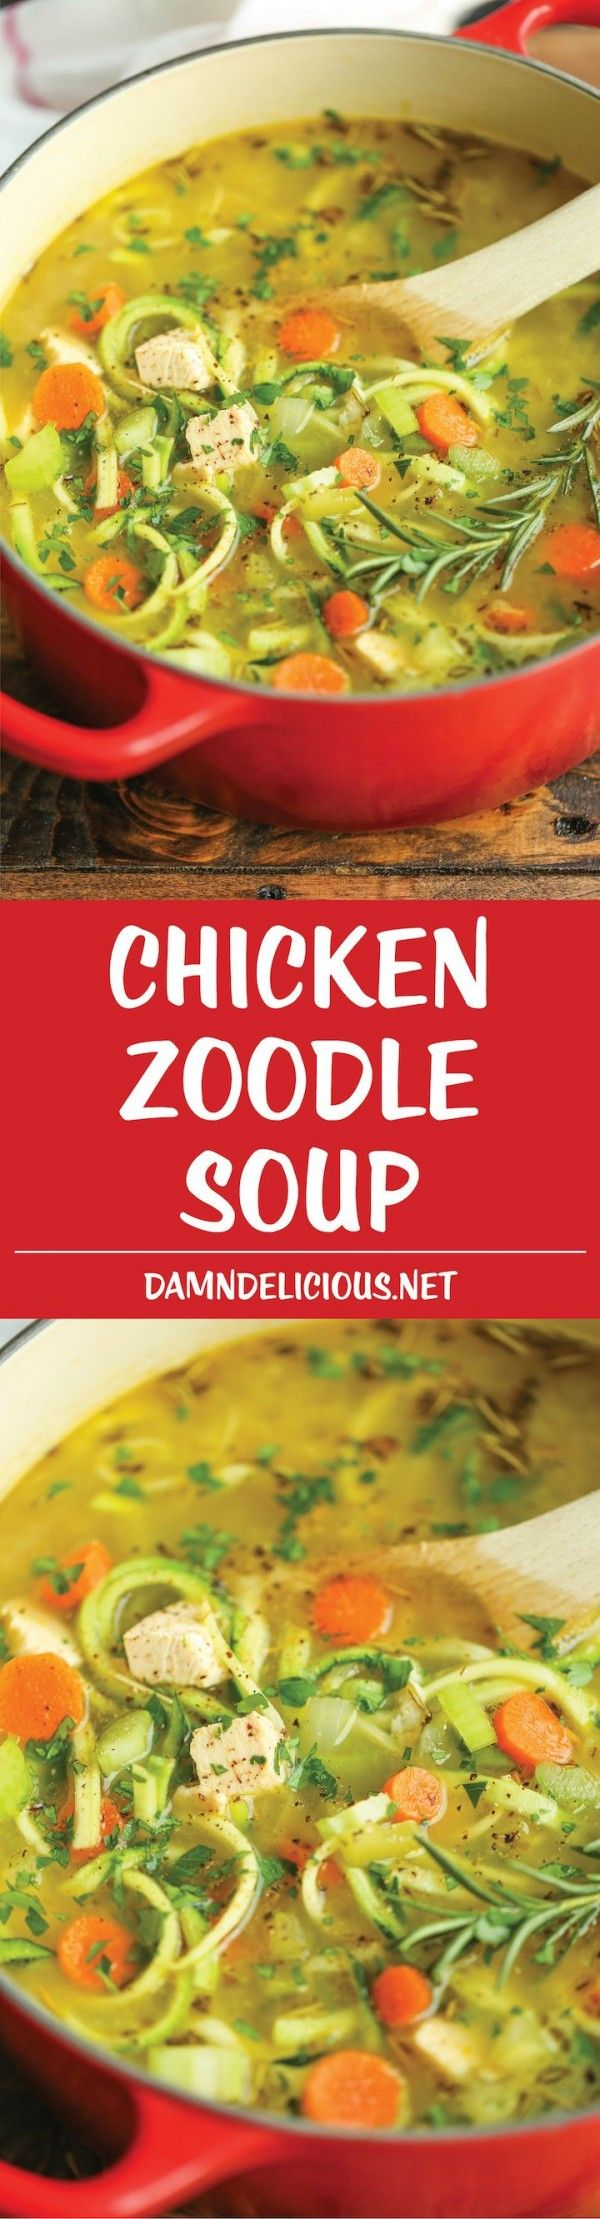 Get the recipe ♥ Chicken Zoodle Soup @recipes_to_go